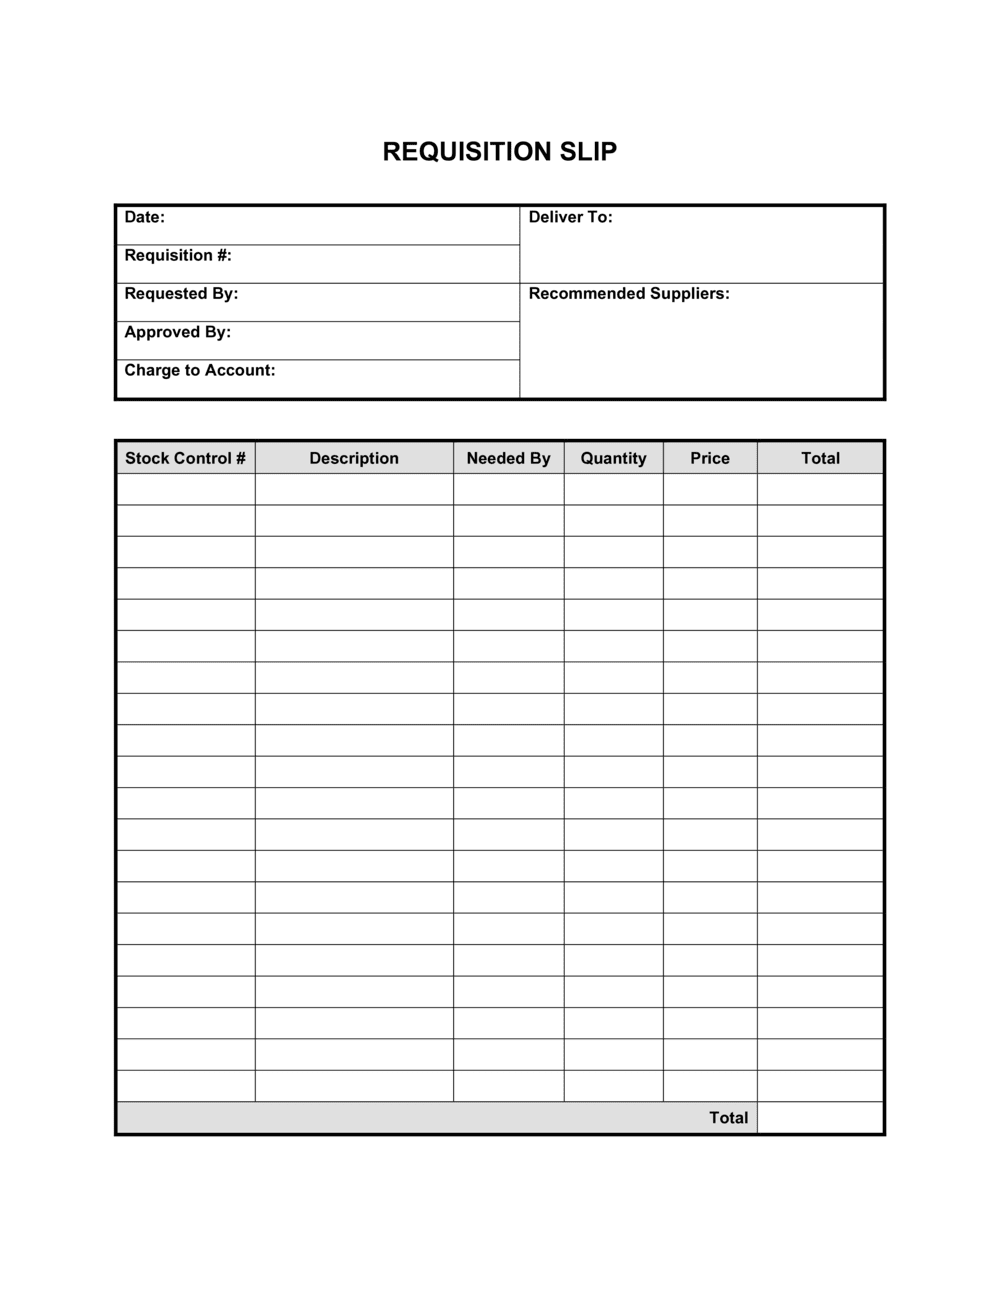 Business-in-a-Box's Requisition Slip Template